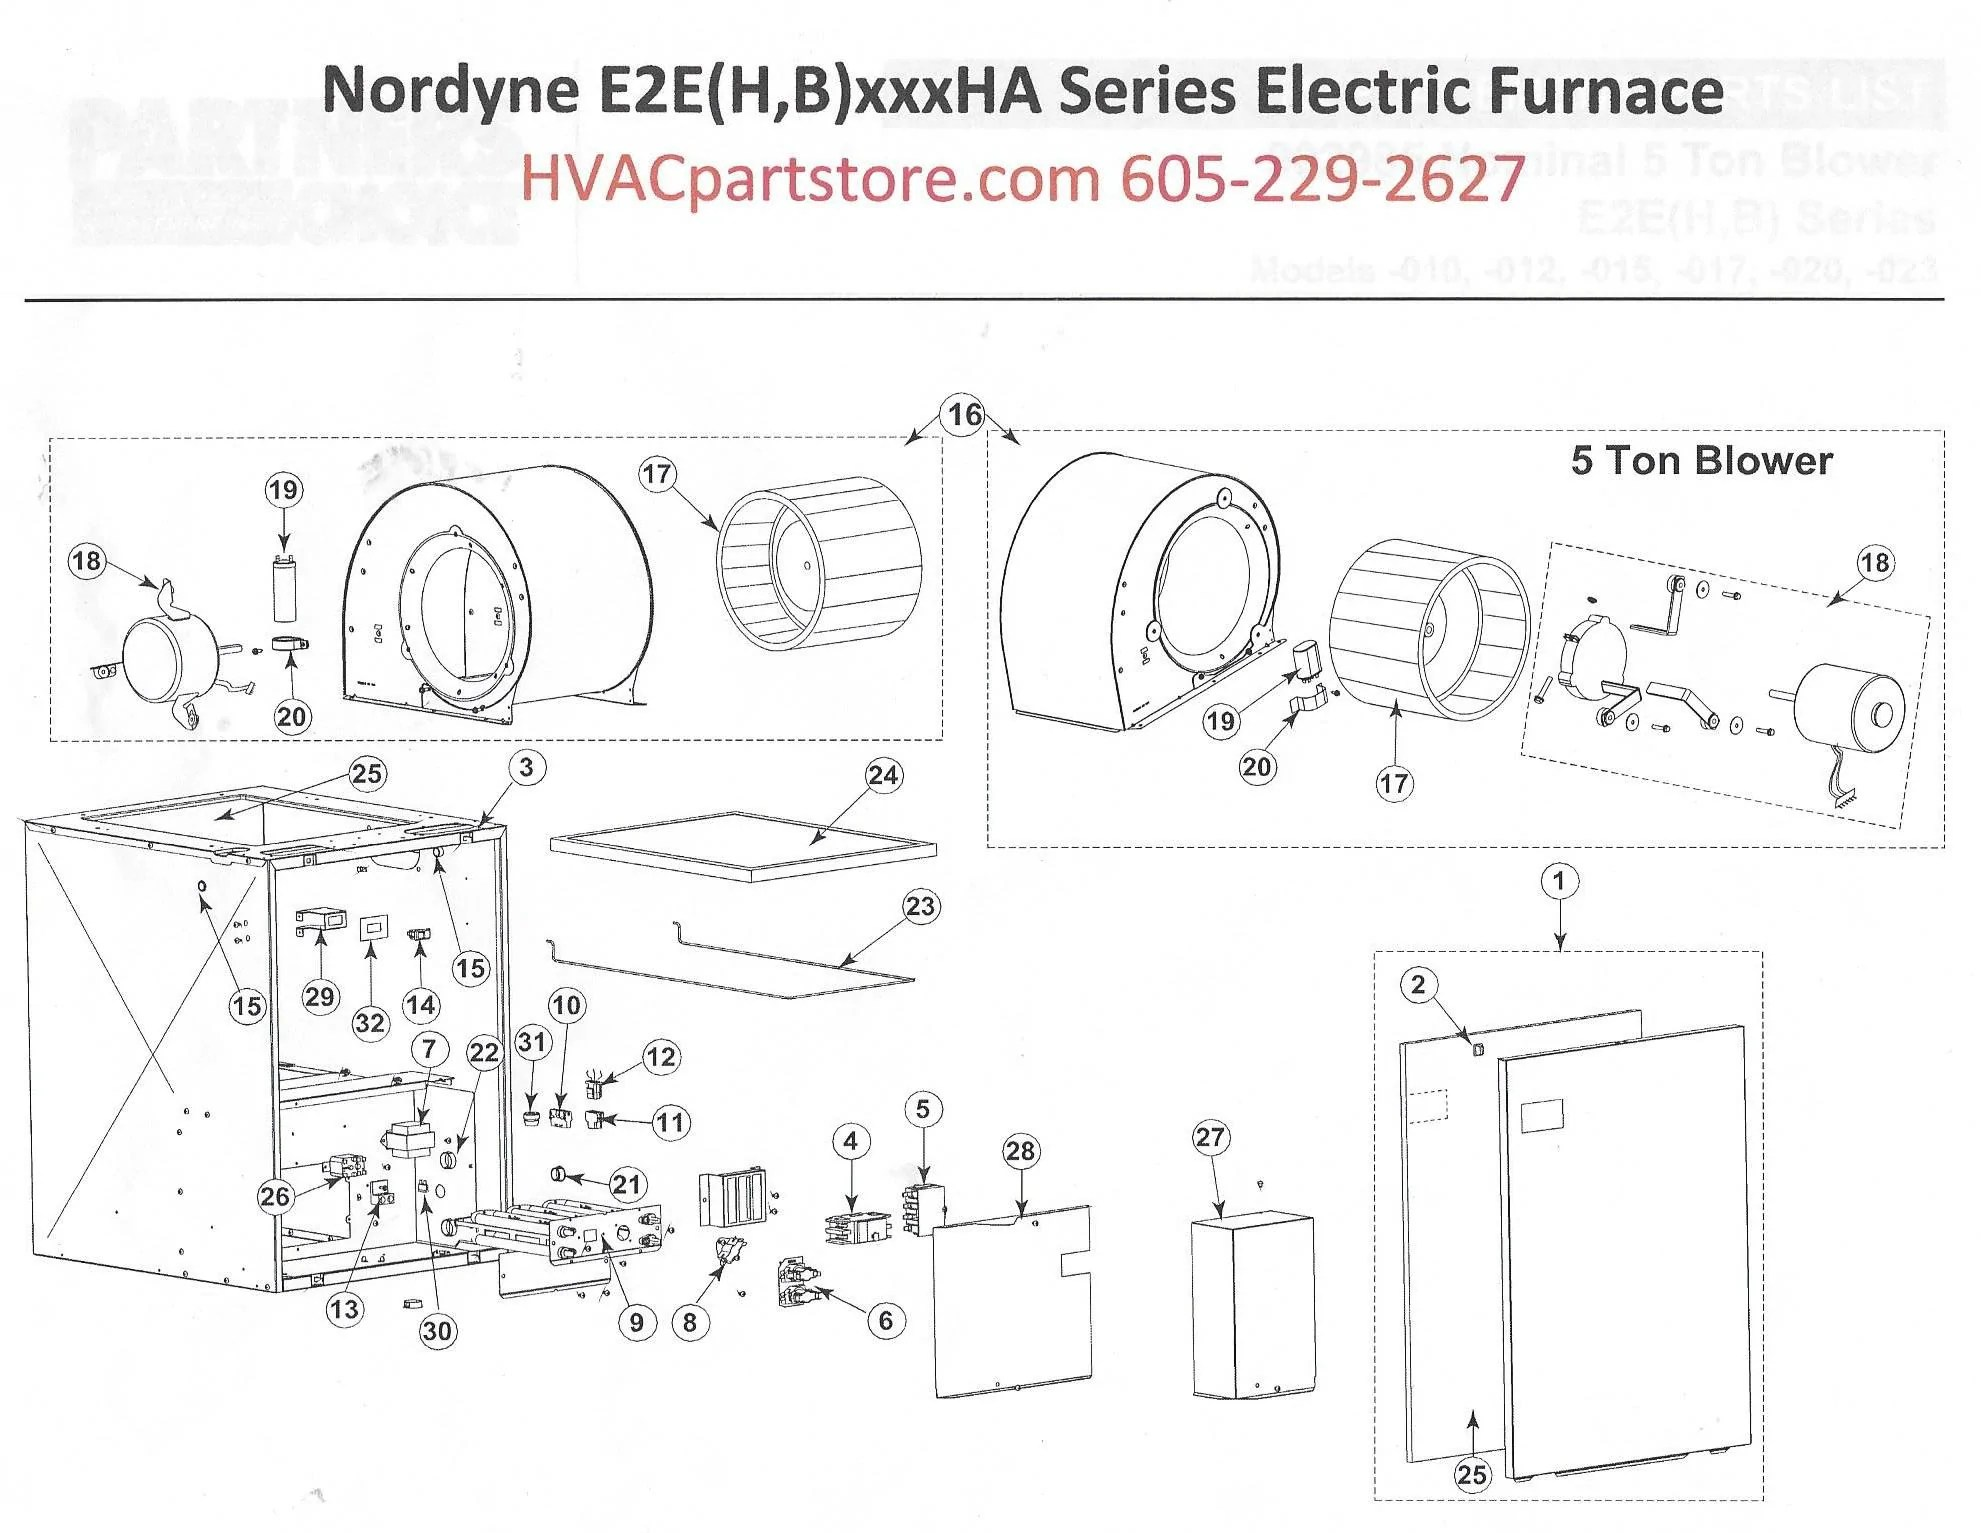 e2eb012ha nordyne electric furnace parts [ 1981 x 1533 Pixel ]